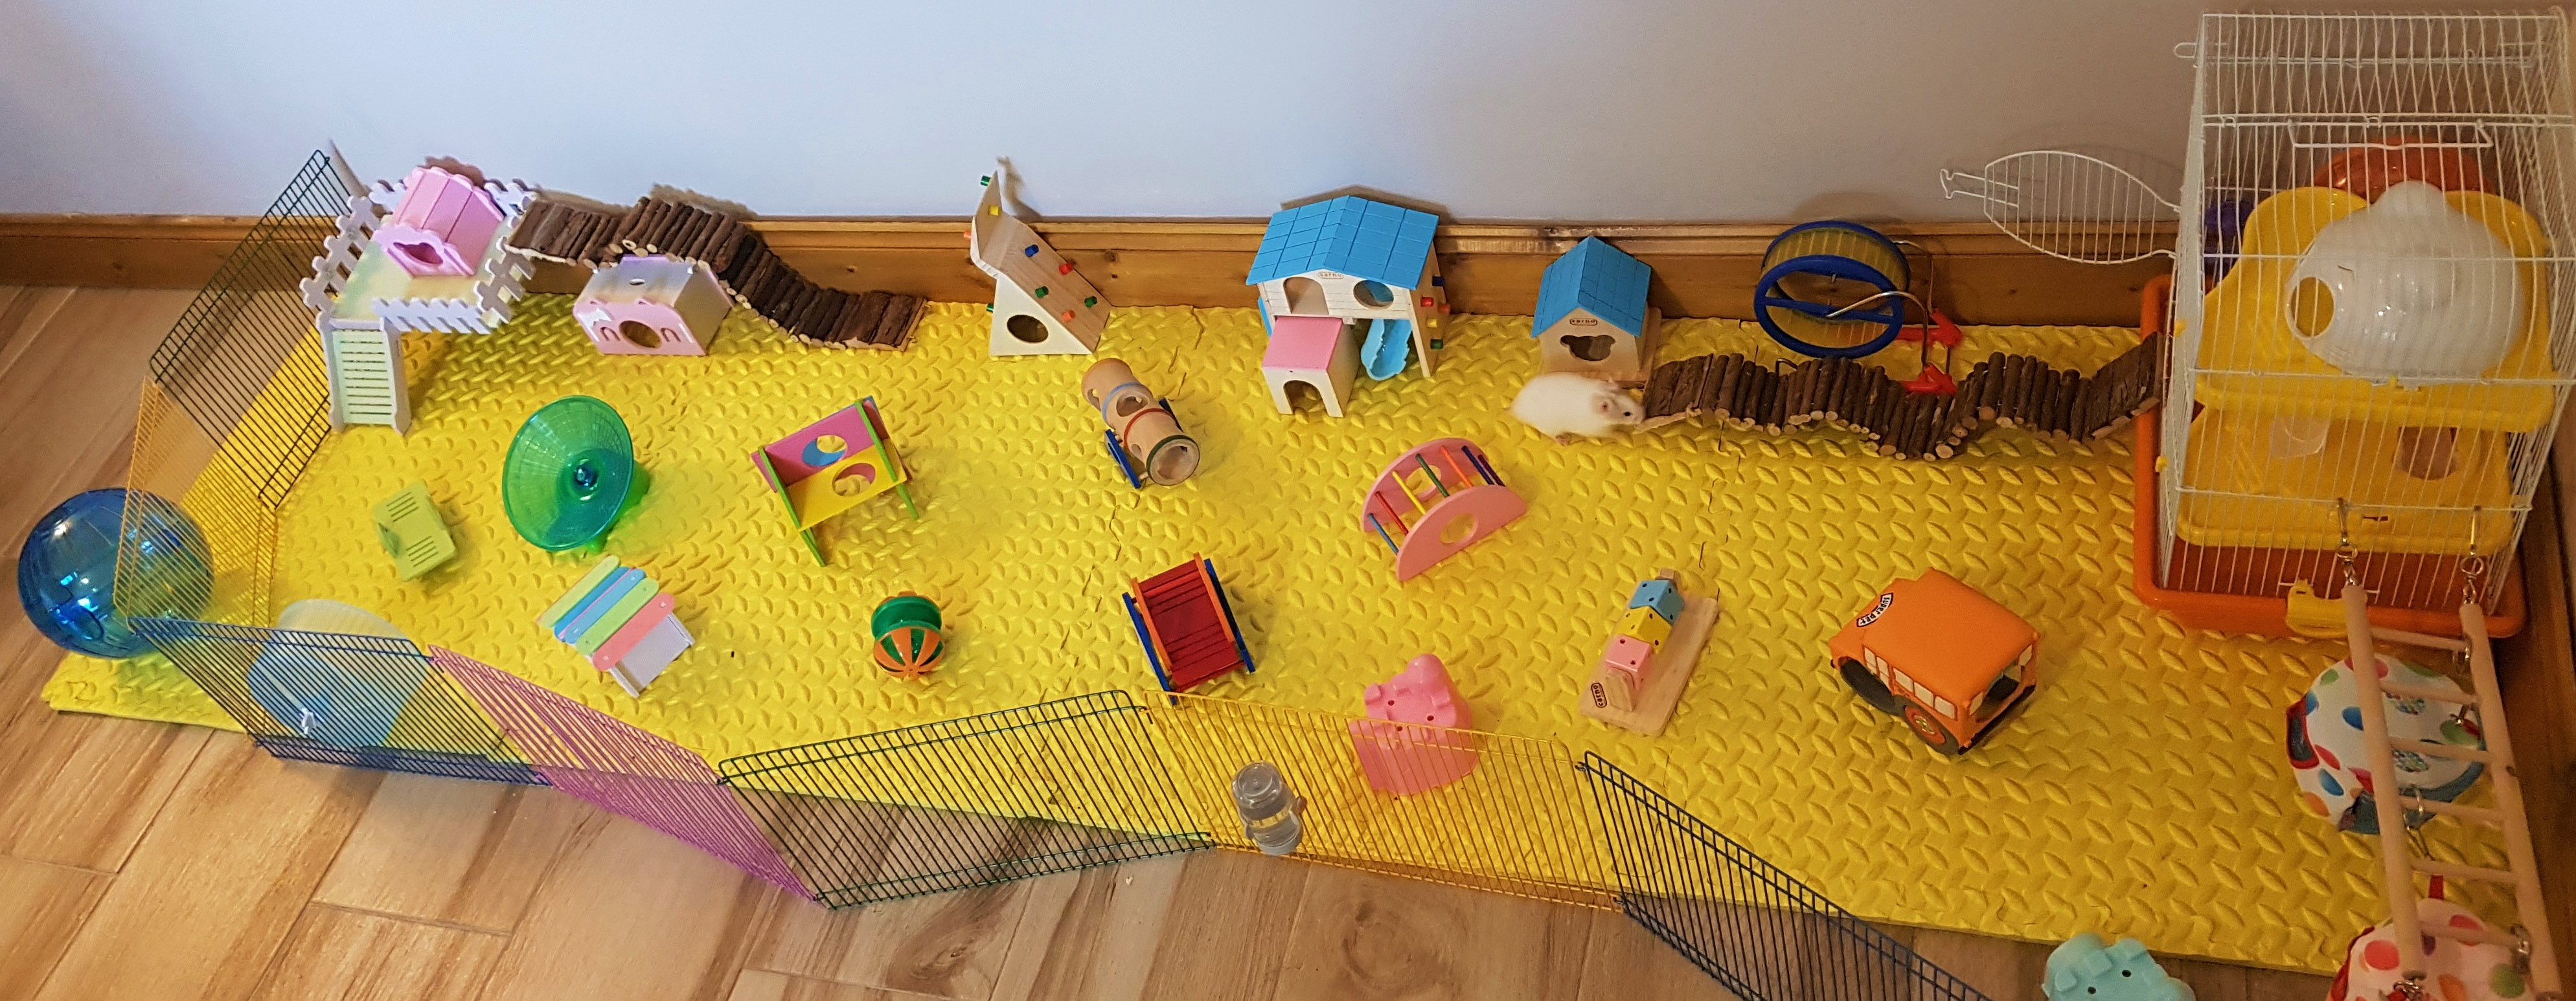 Sample of all the hamster houses and play set.